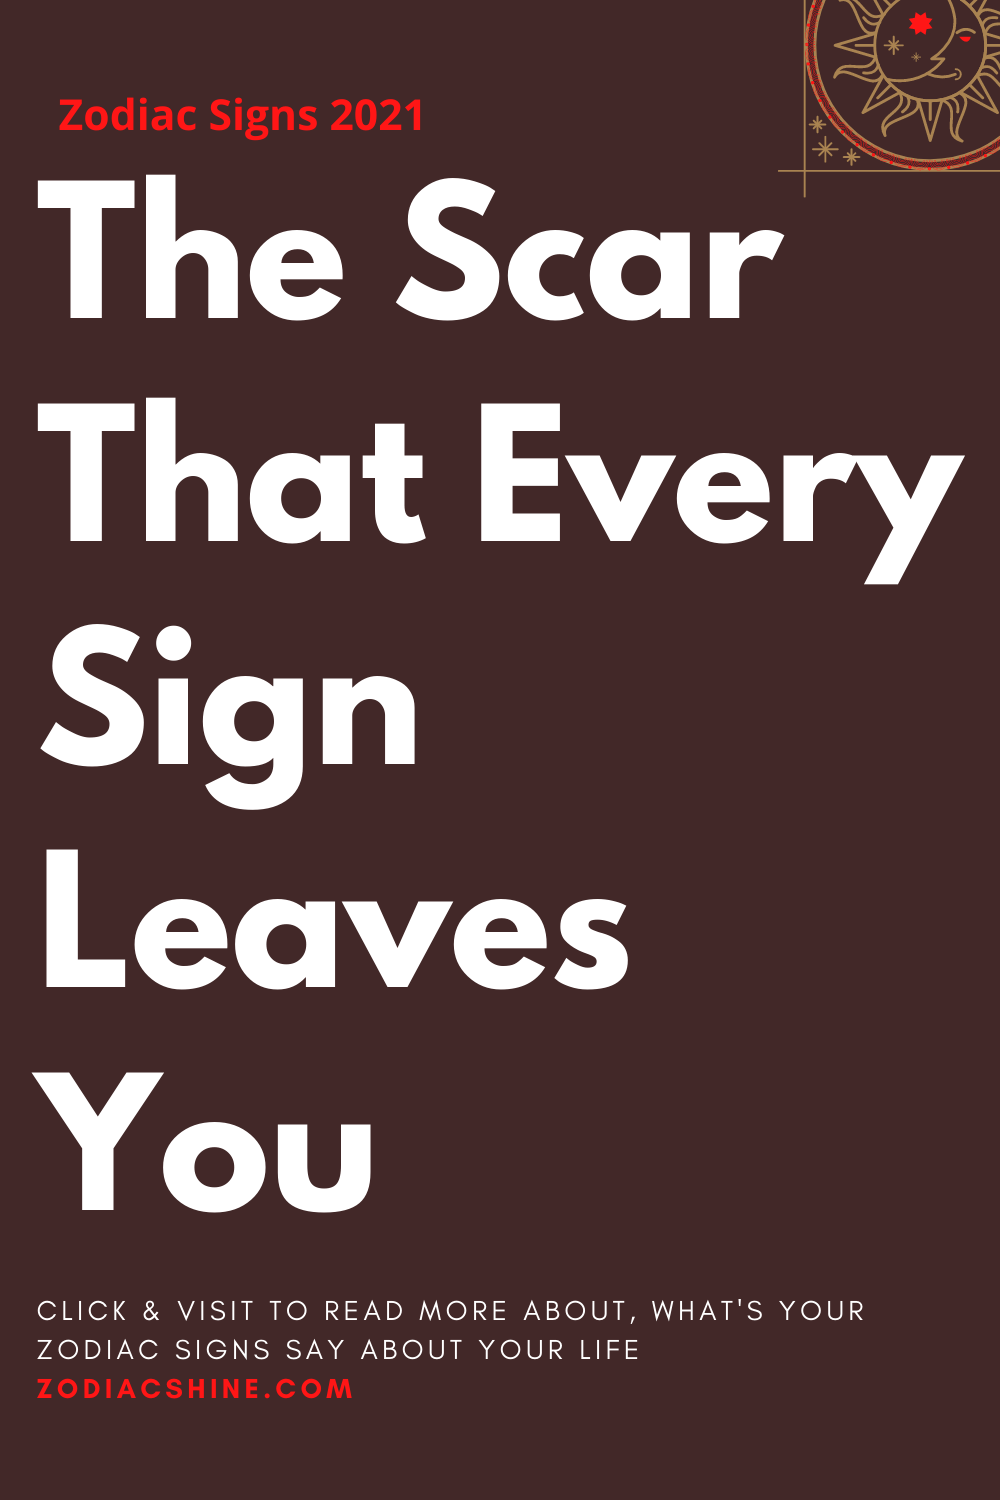 The Scar That Every Sign Leaves You